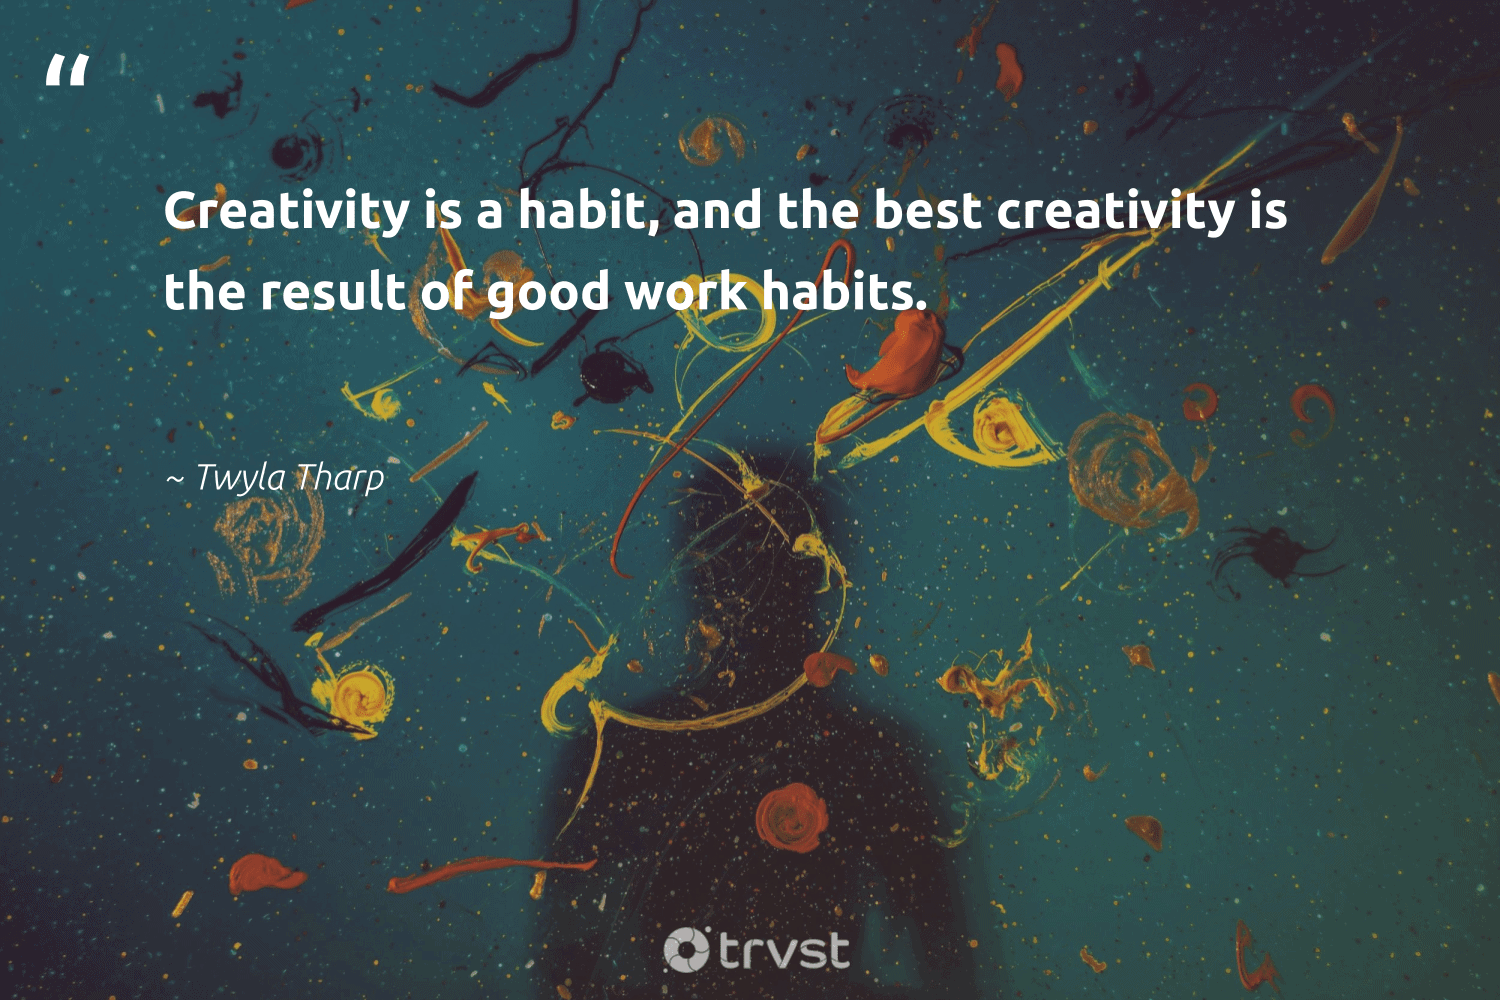 """""""Creativity is a habit, and the best creativity is the result of good work habits.""""  - Twyla Tharp #trvst #quotes #creativity #creative #nevergiveup #begreat #planetearthfirst #sketchbook #futureofwork #softskills #dogood #design"""